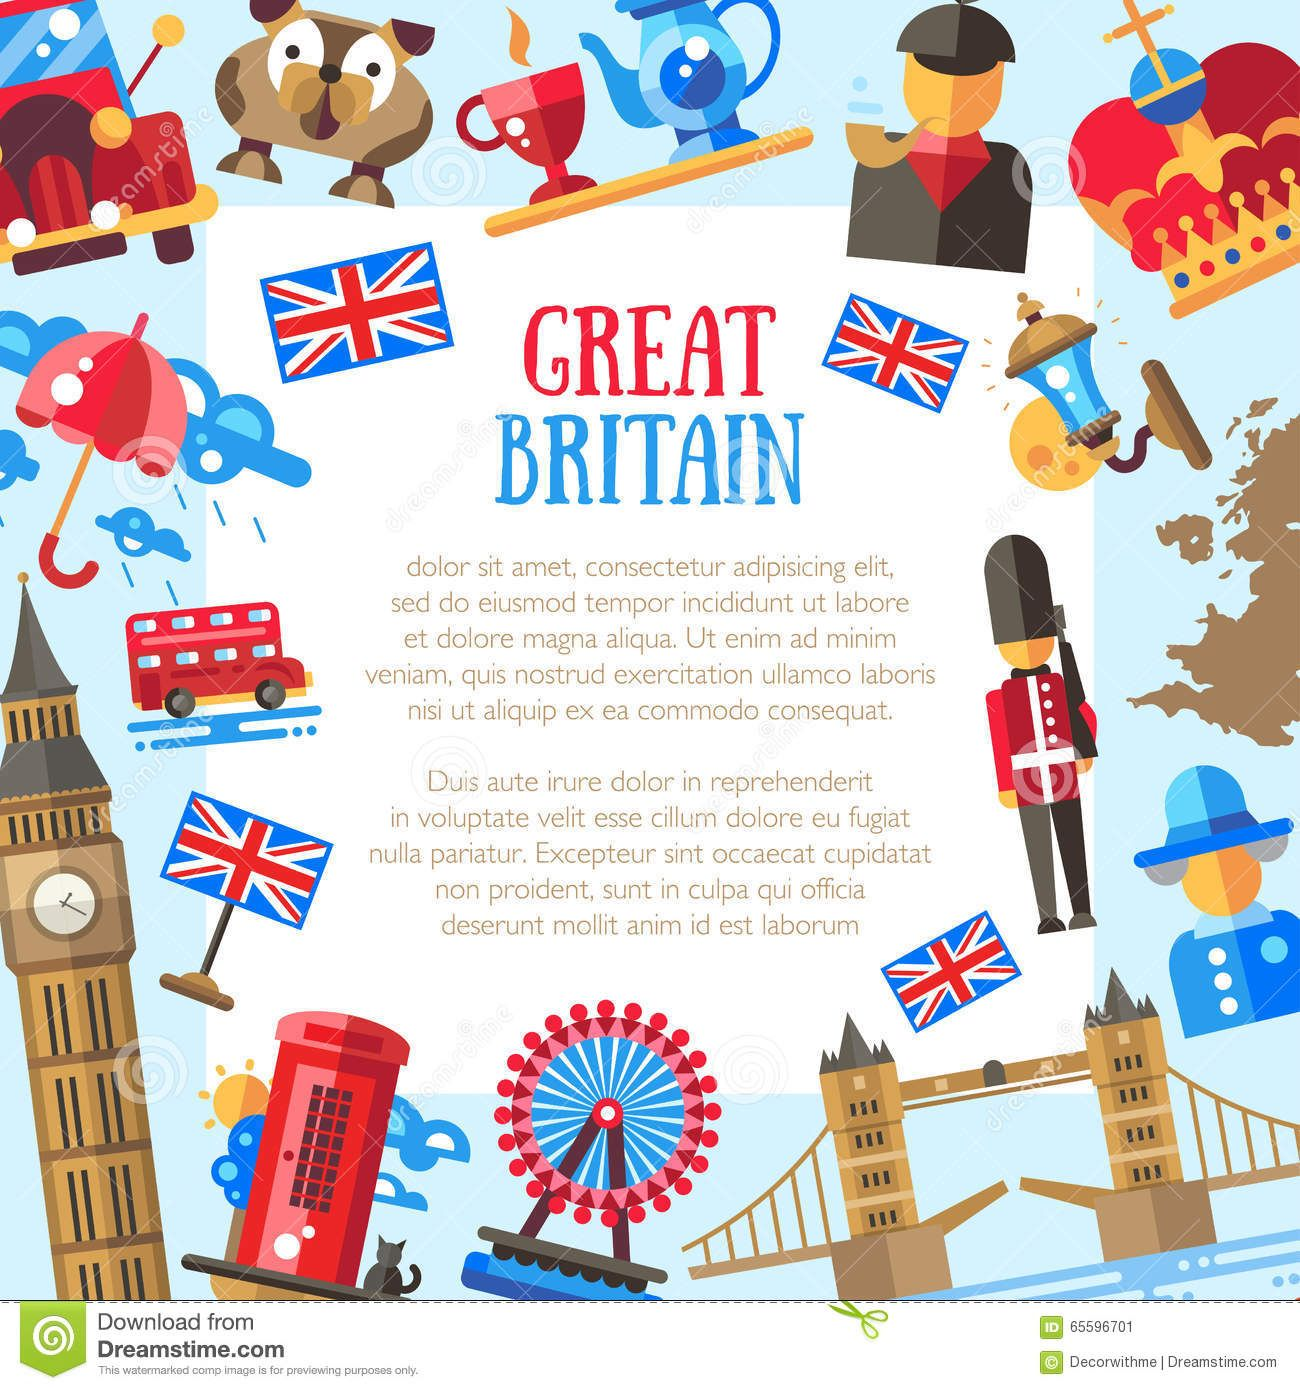 Great britain travel card template with famous british symbols great britain travel card template with famous british symbols download from over 53 million high biocorpaavc Choice Image